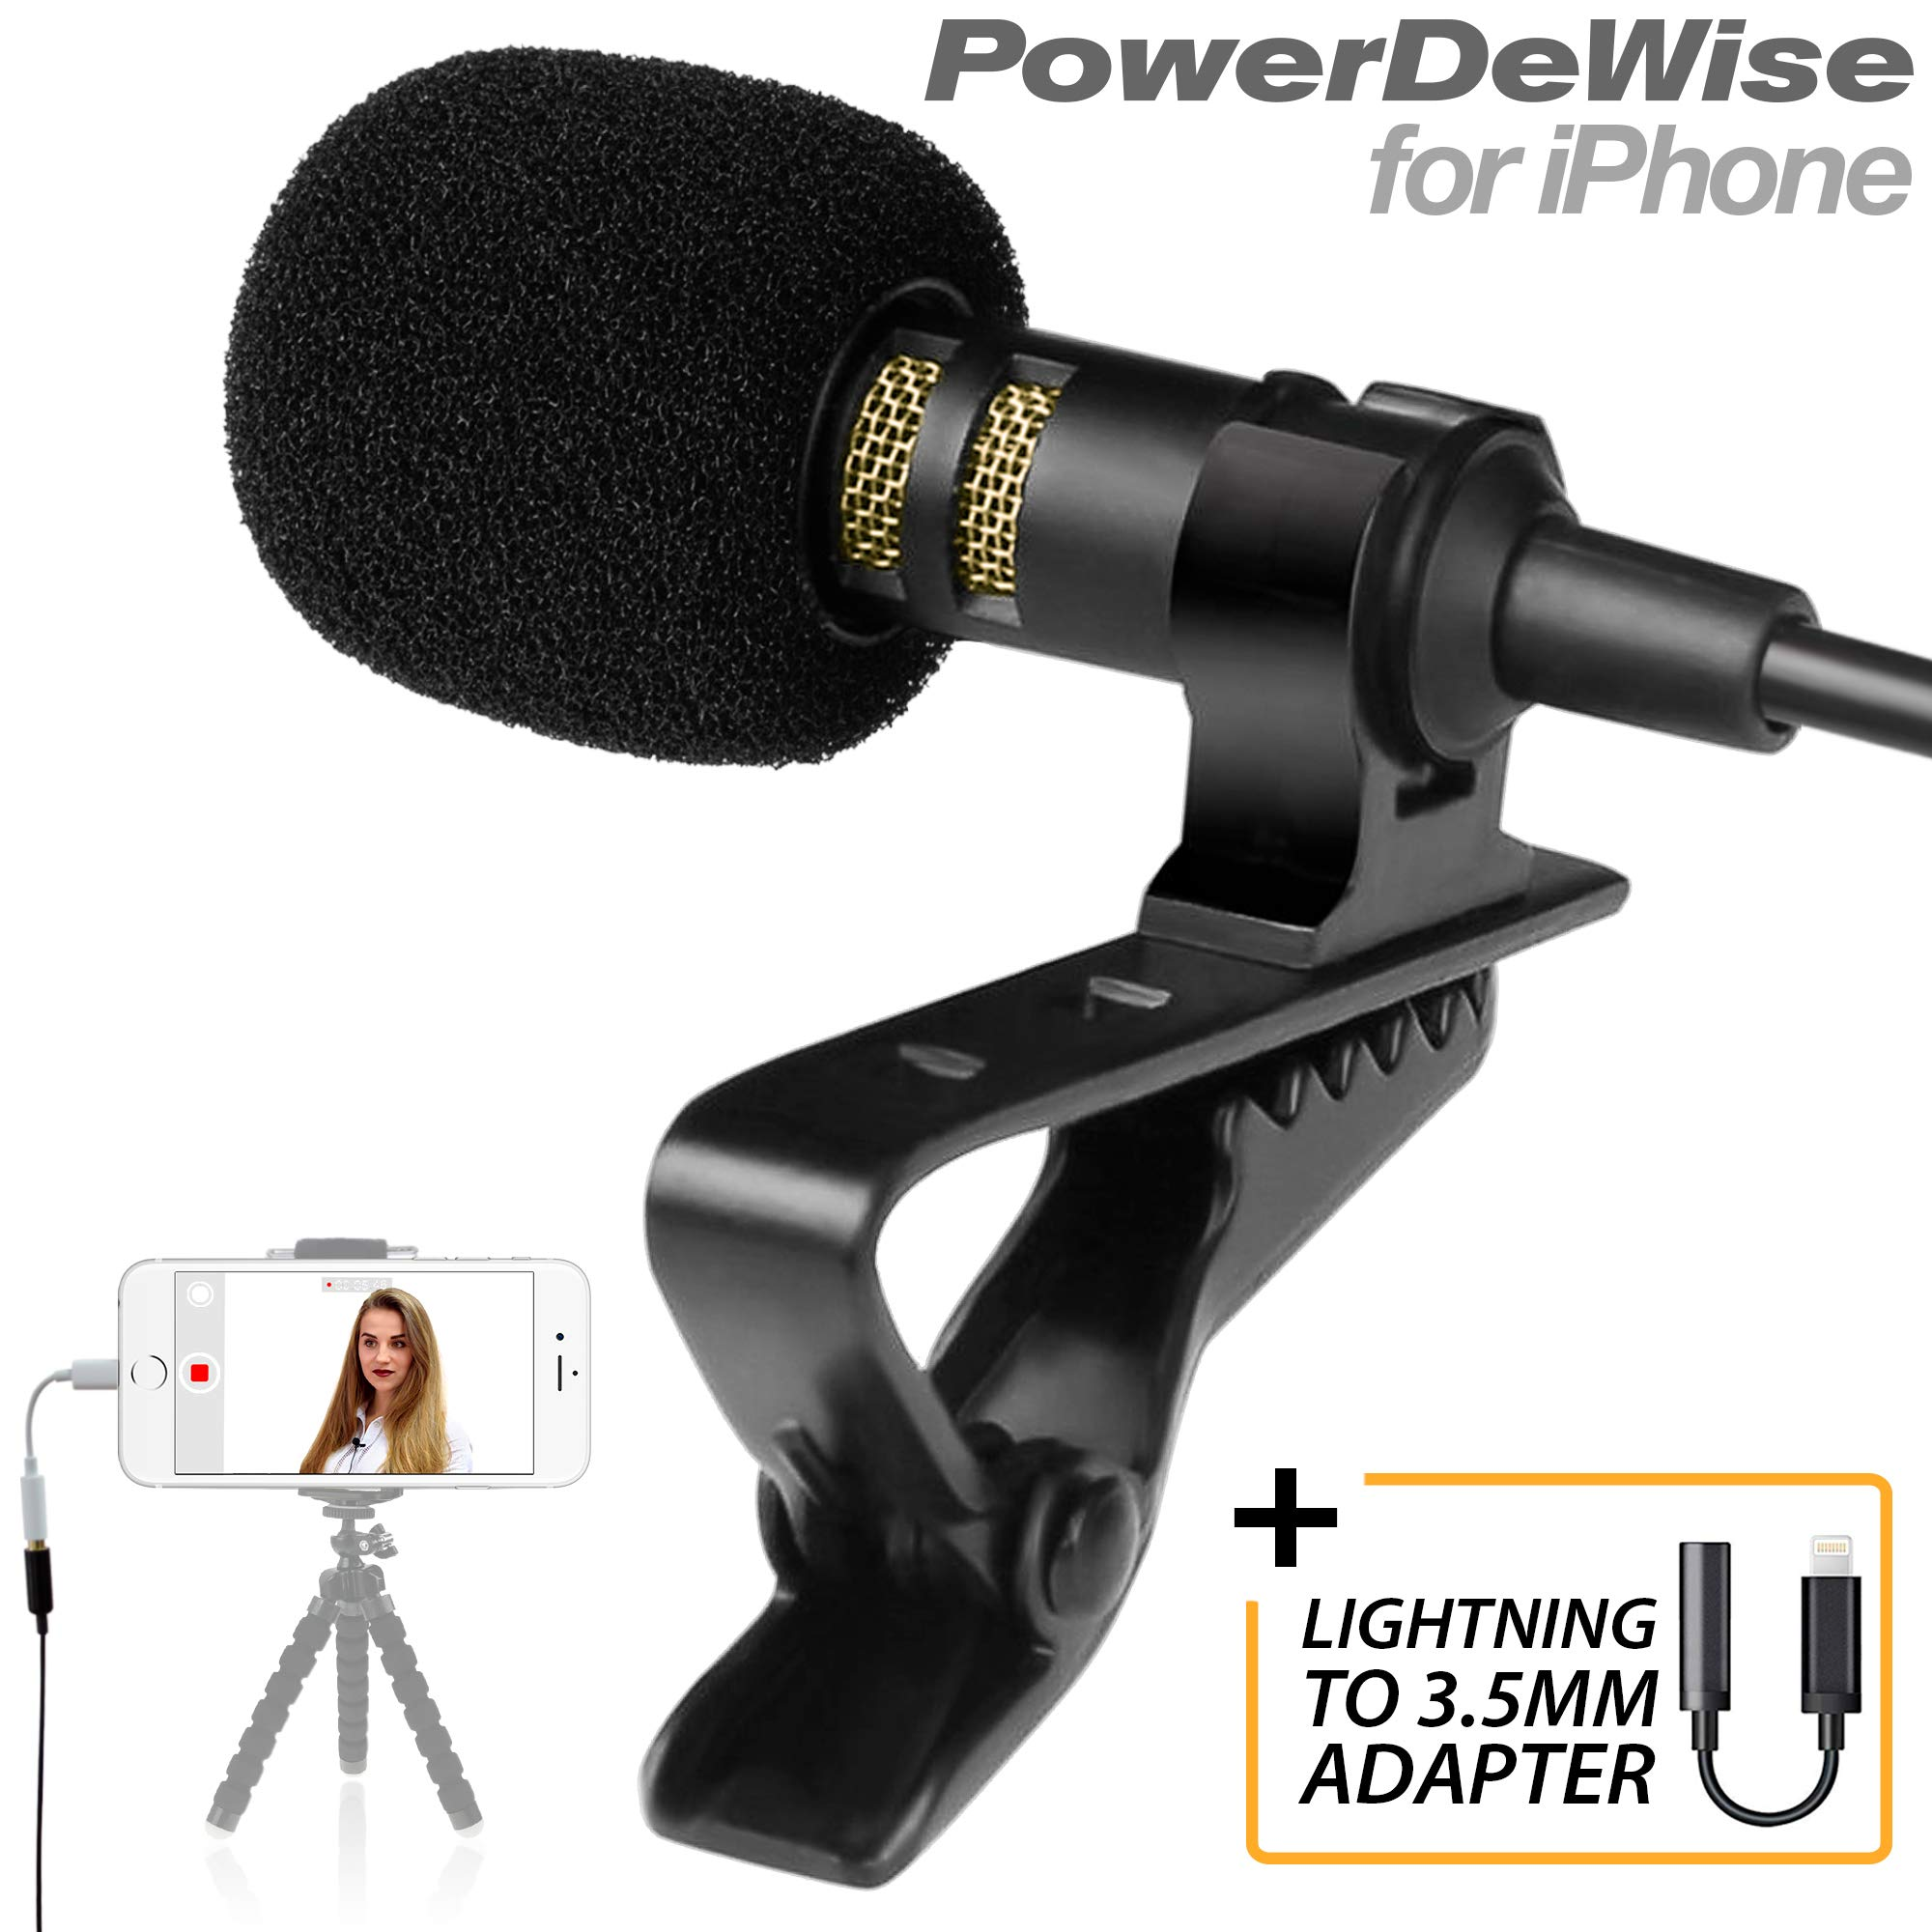 Professional Grade Lavalier Microphone with Adapter Compatible with iPhone - Lapel Microphone for iPhone 5 6 7 8 X - iPhone Compatible External Microphone - iPhone XR, XS, XS Max Microphone by PowerDeWise